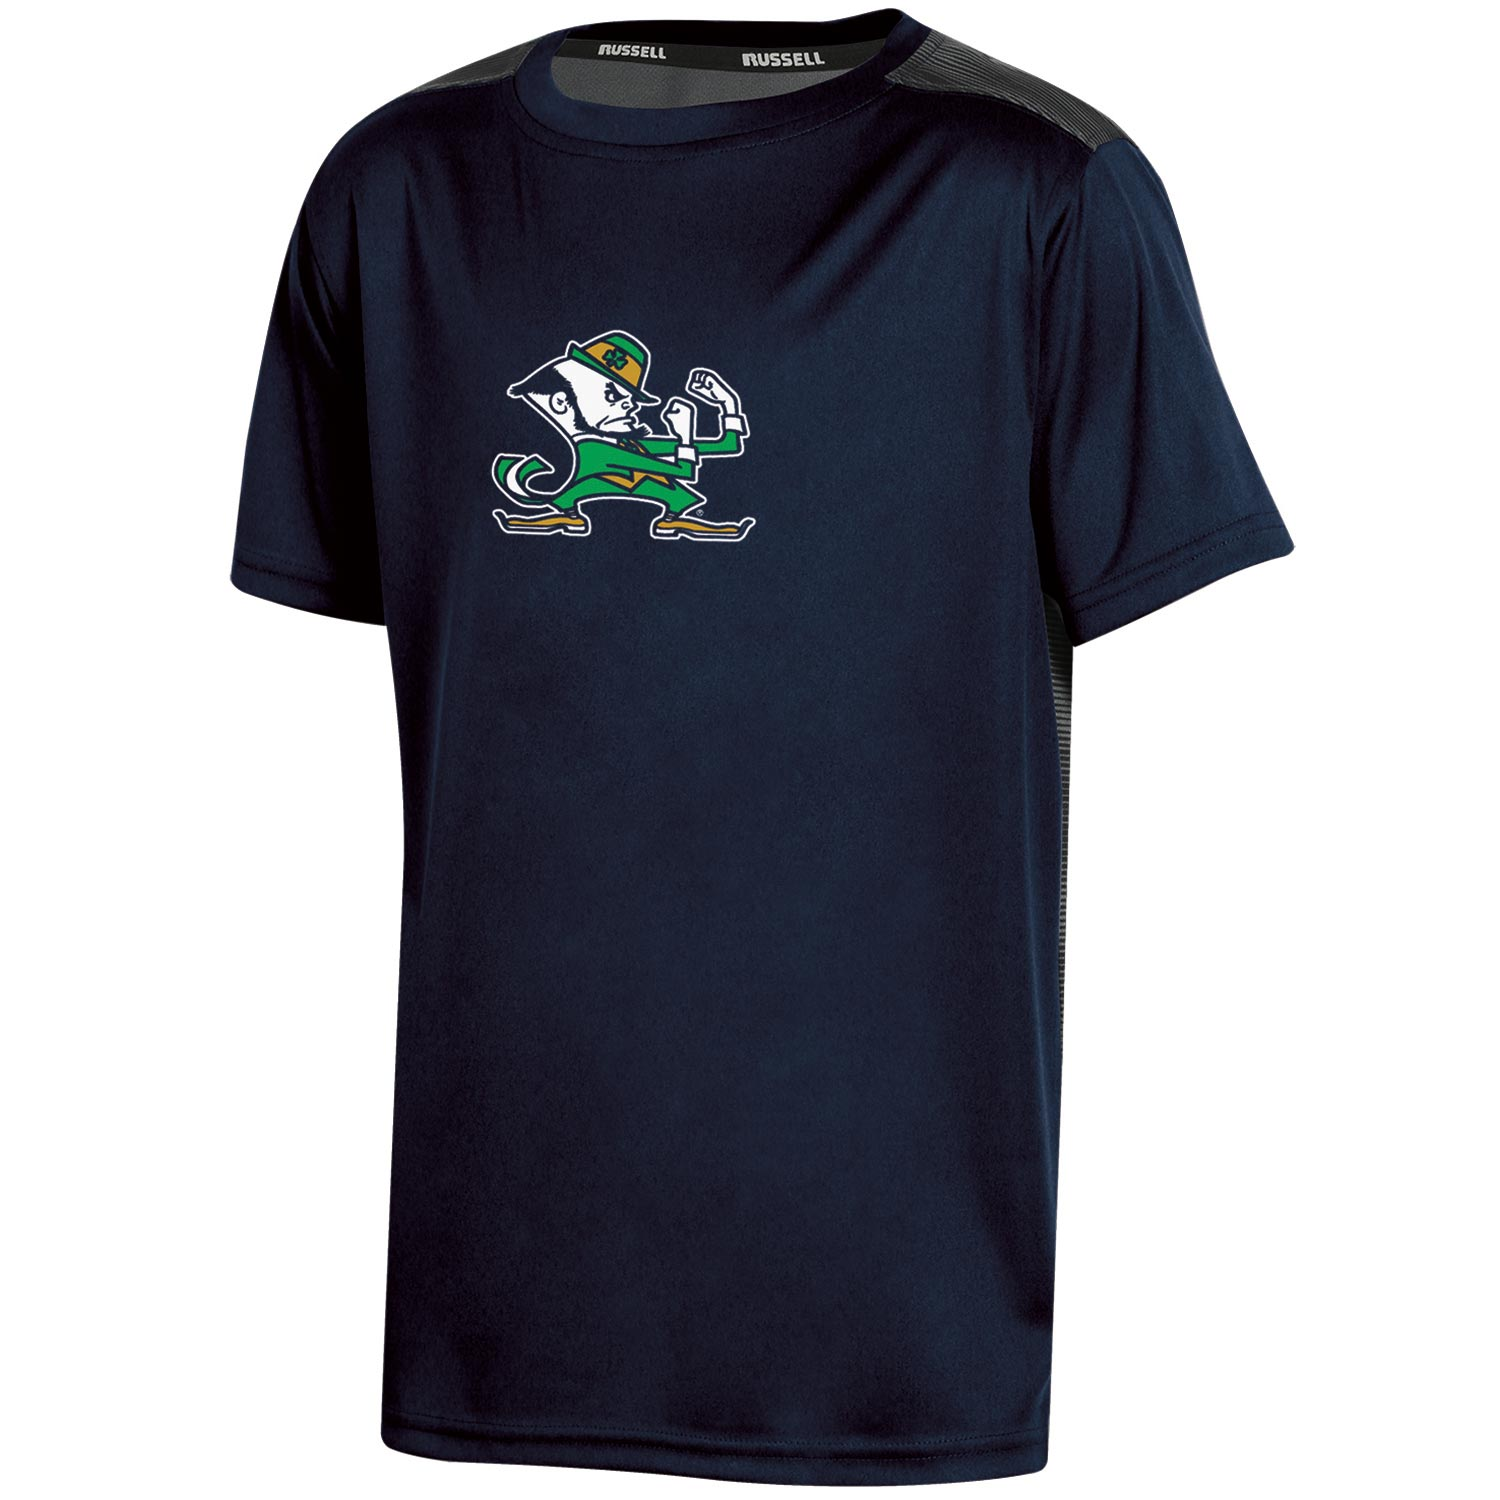 Youth Russell Navy Notre Dame Fighting Irish Color Block T-Shirt